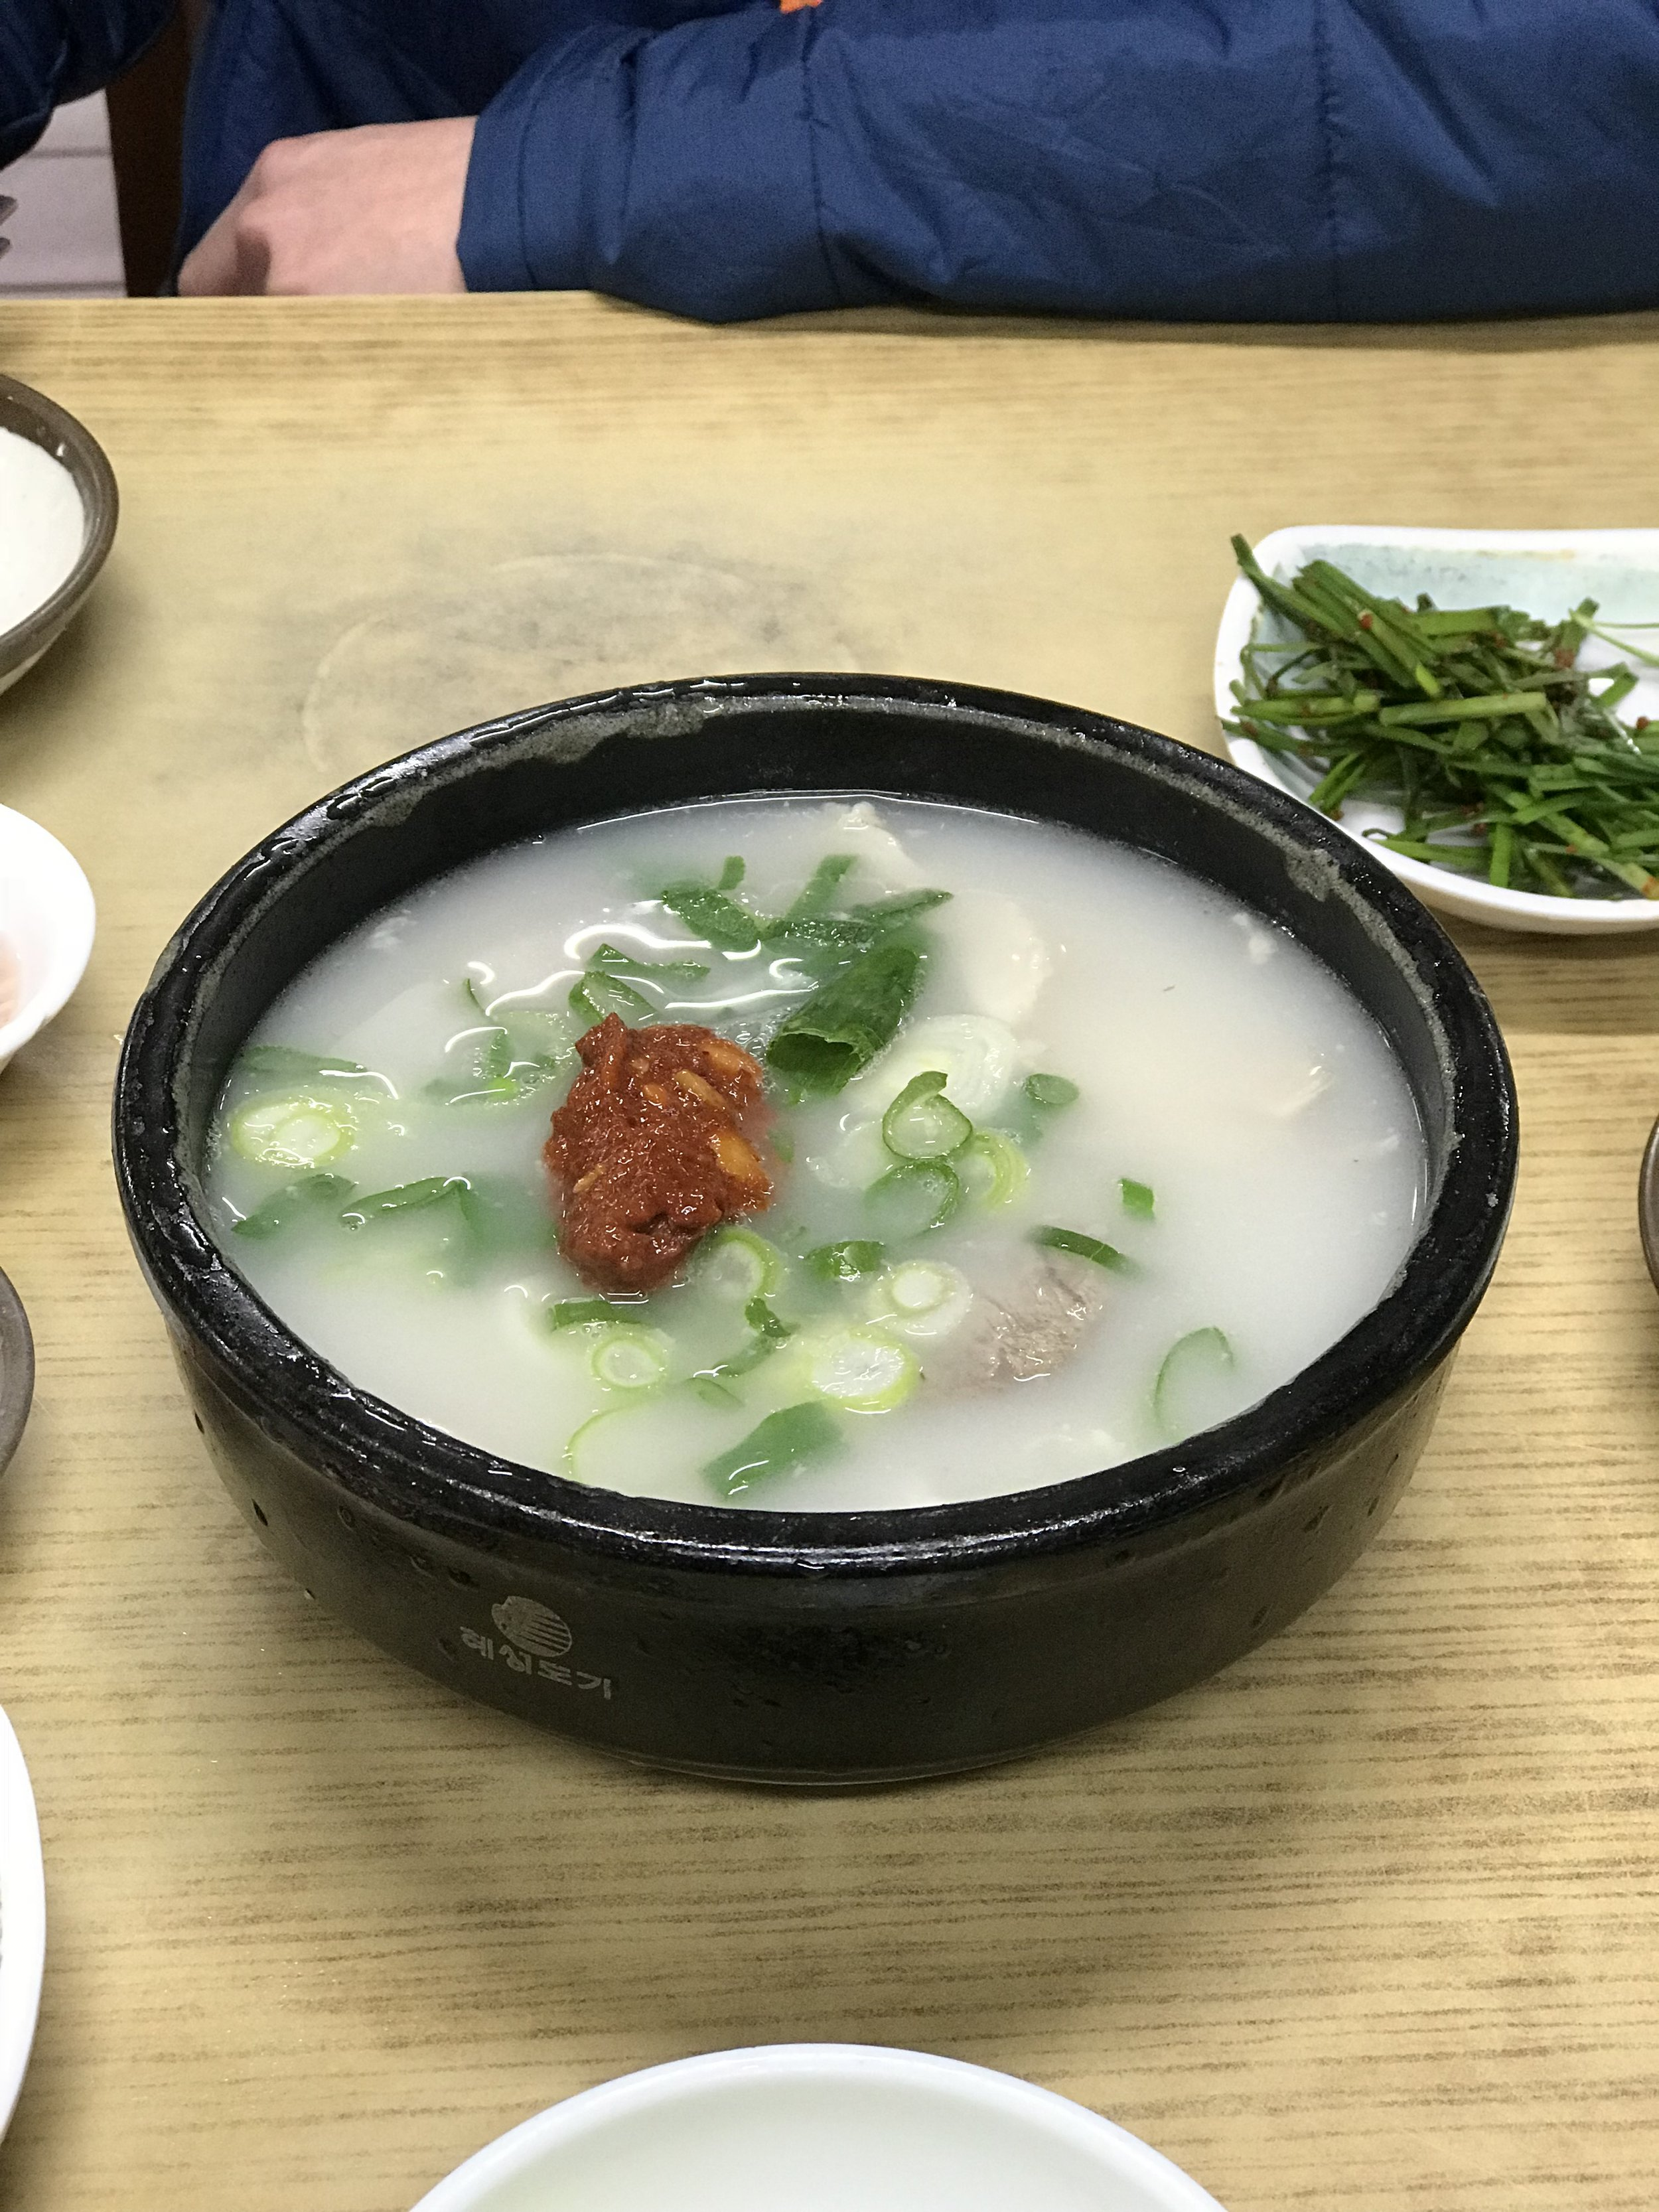 Dwaeji Gukbap: Busan is known for making this pork stew. It is so delicious and makes a wonderful meal any time of the day.